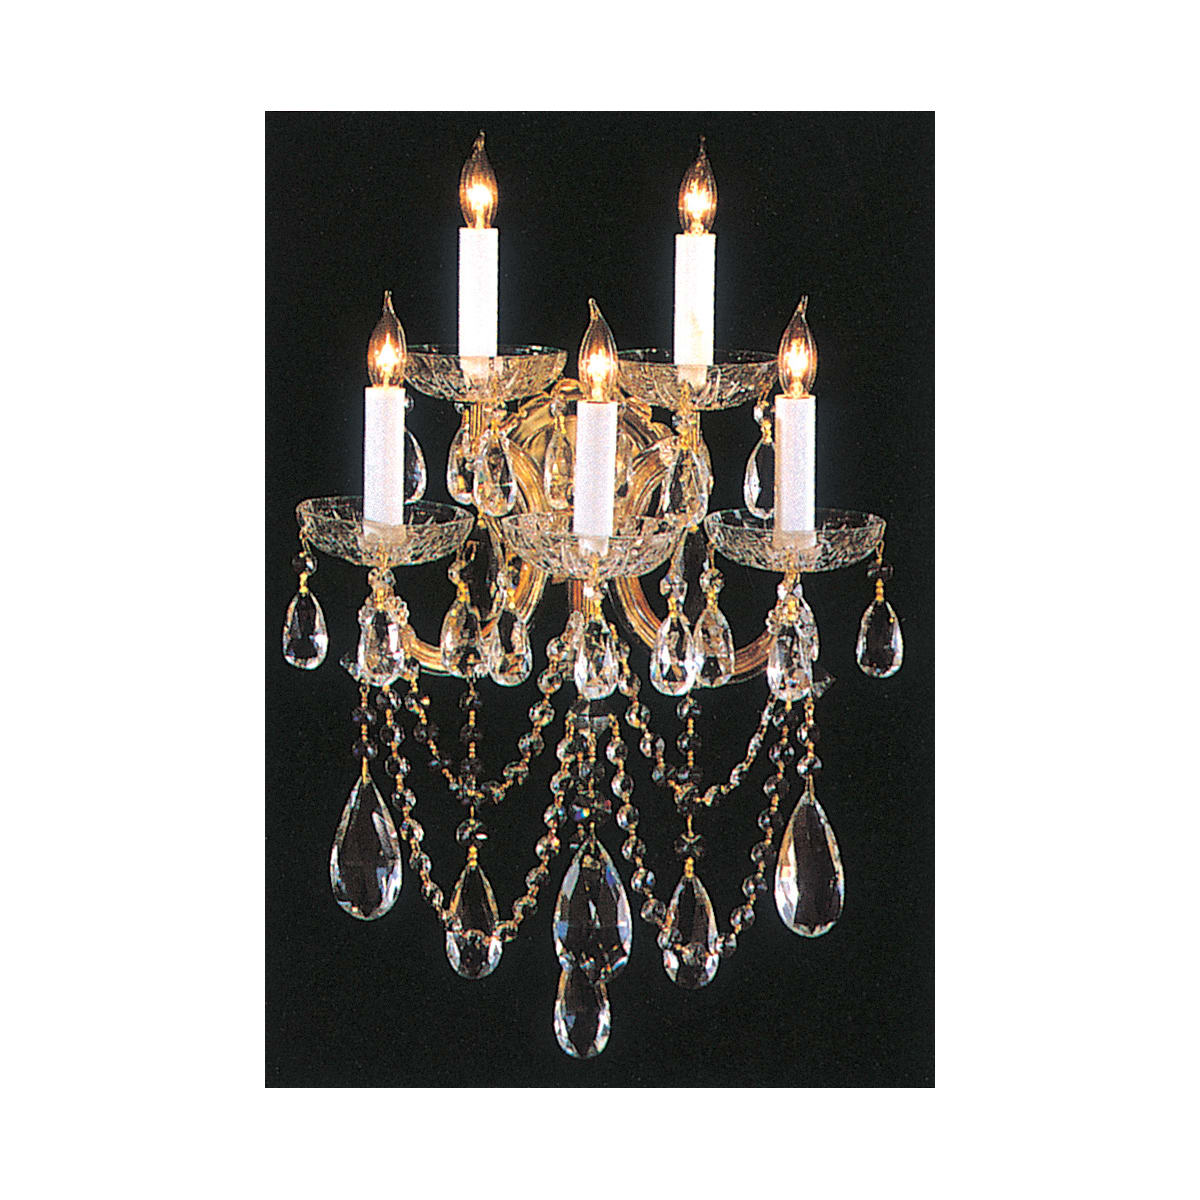 Crystorama Lighting Group 4425 Gd Cl S Gold Maria Theresa 5 Light 13 1 2 Wide Wall Sconce With Clear Swarovski Strass Crystals